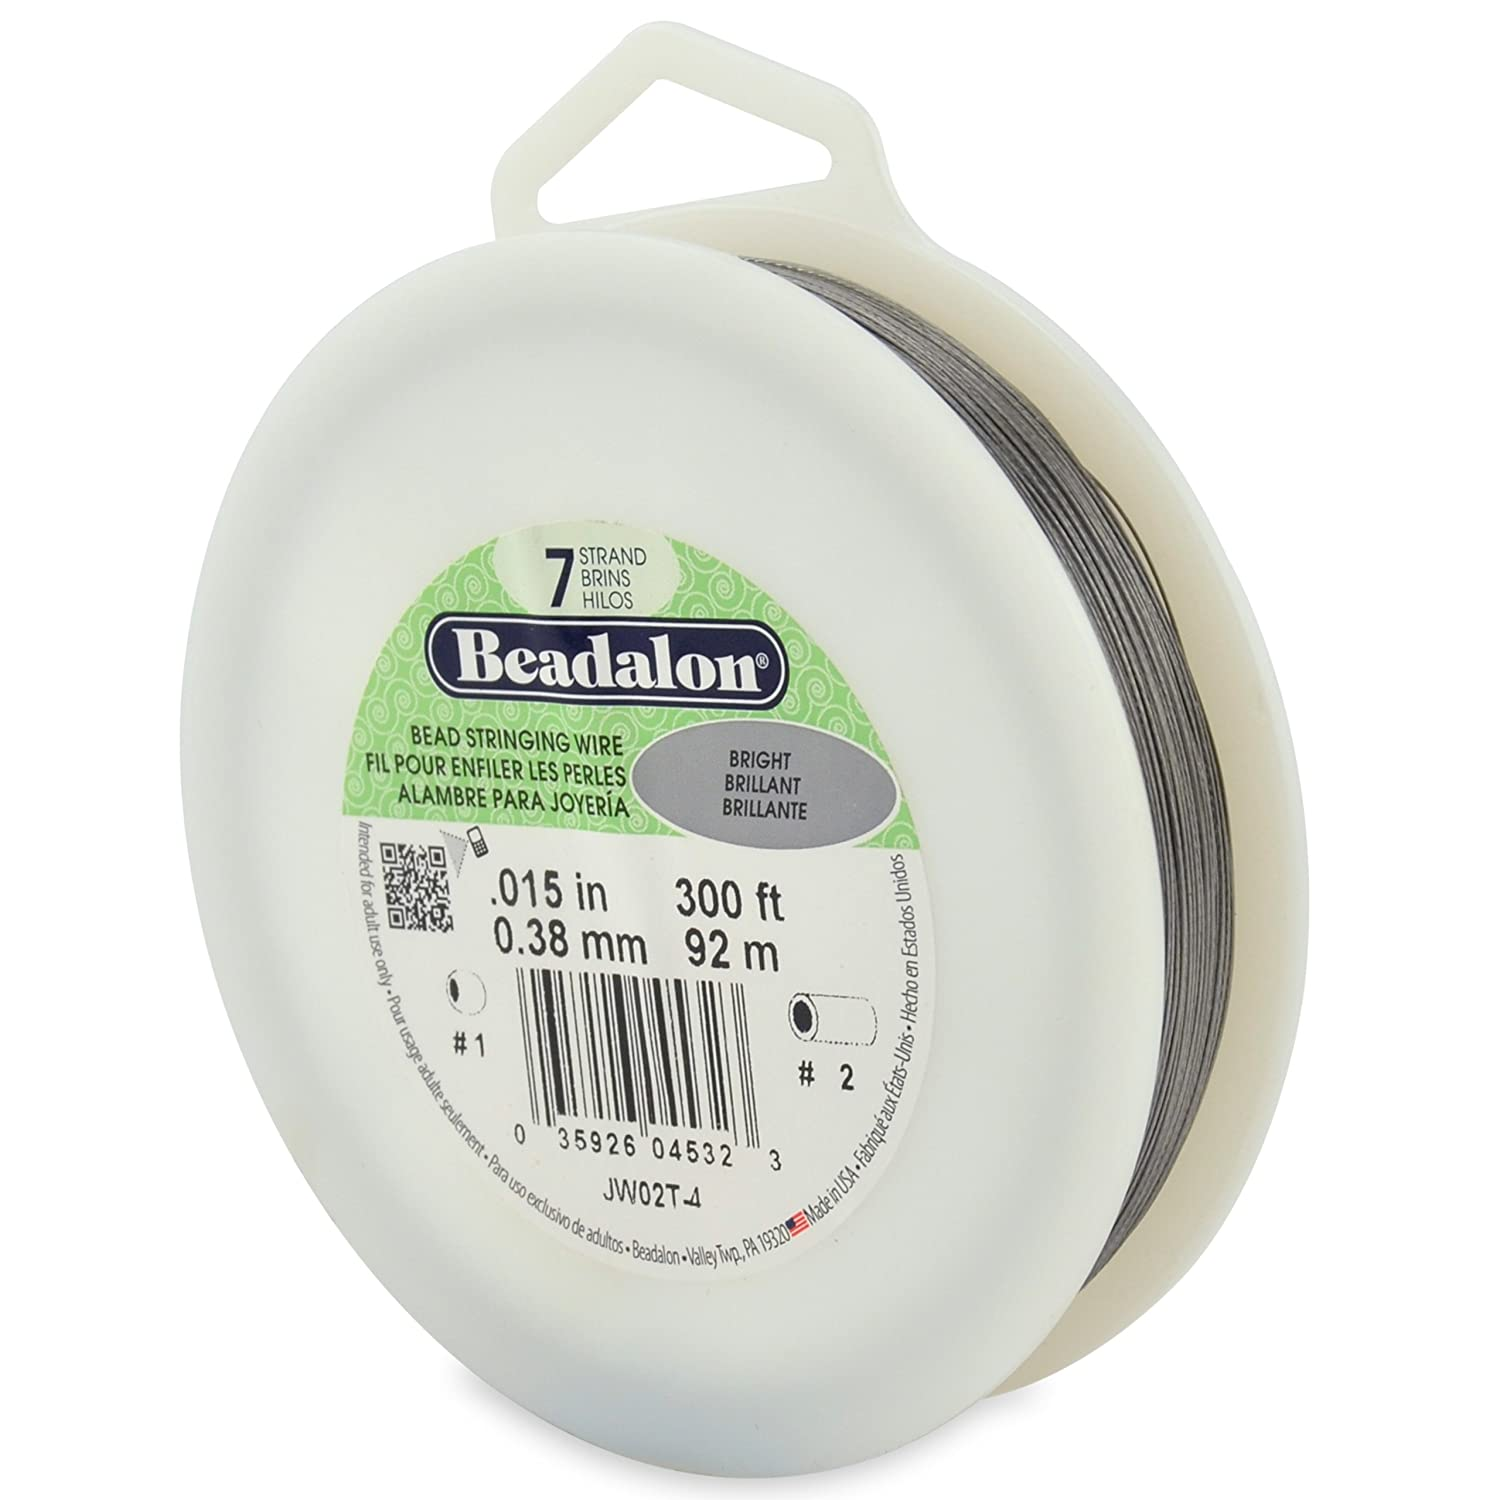 Amazon.com: Beadalon 7-Strand Bead Stringing Wire, 0.015-Inch ...